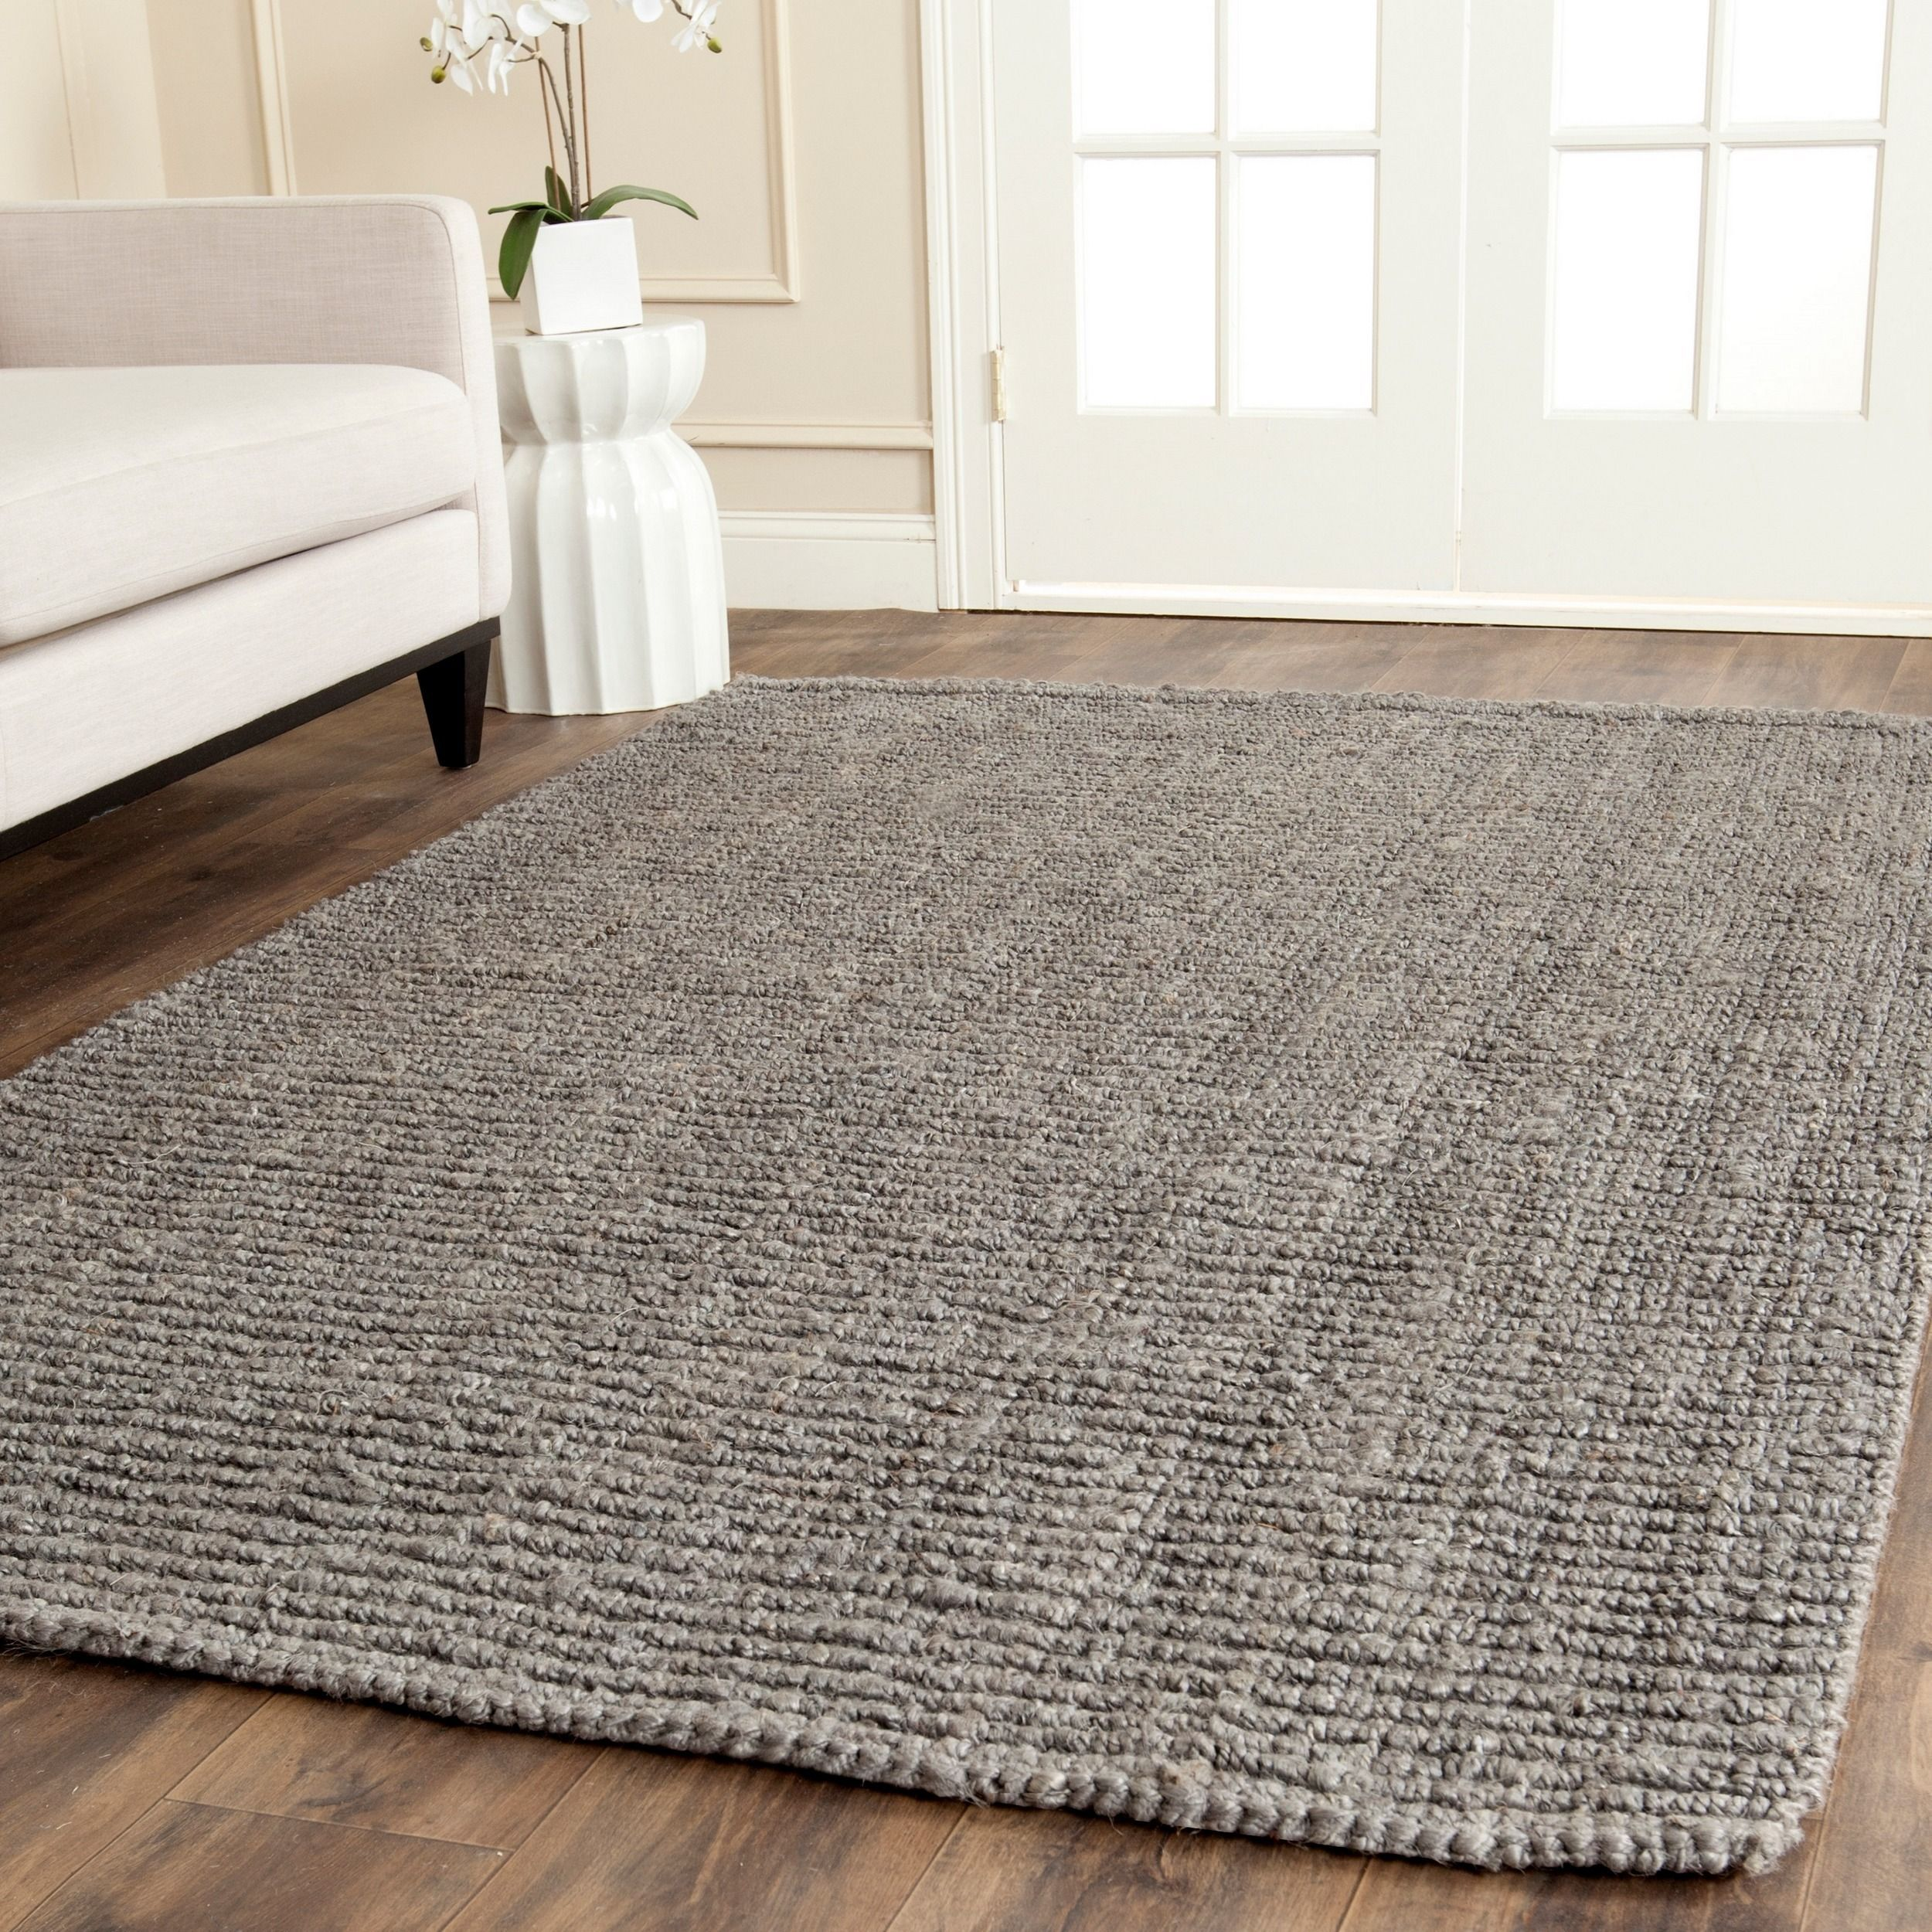 Safavieh Casual Natural Fiber Hand Woven Light Grey Chunky Thick Jute Rug 6 Square